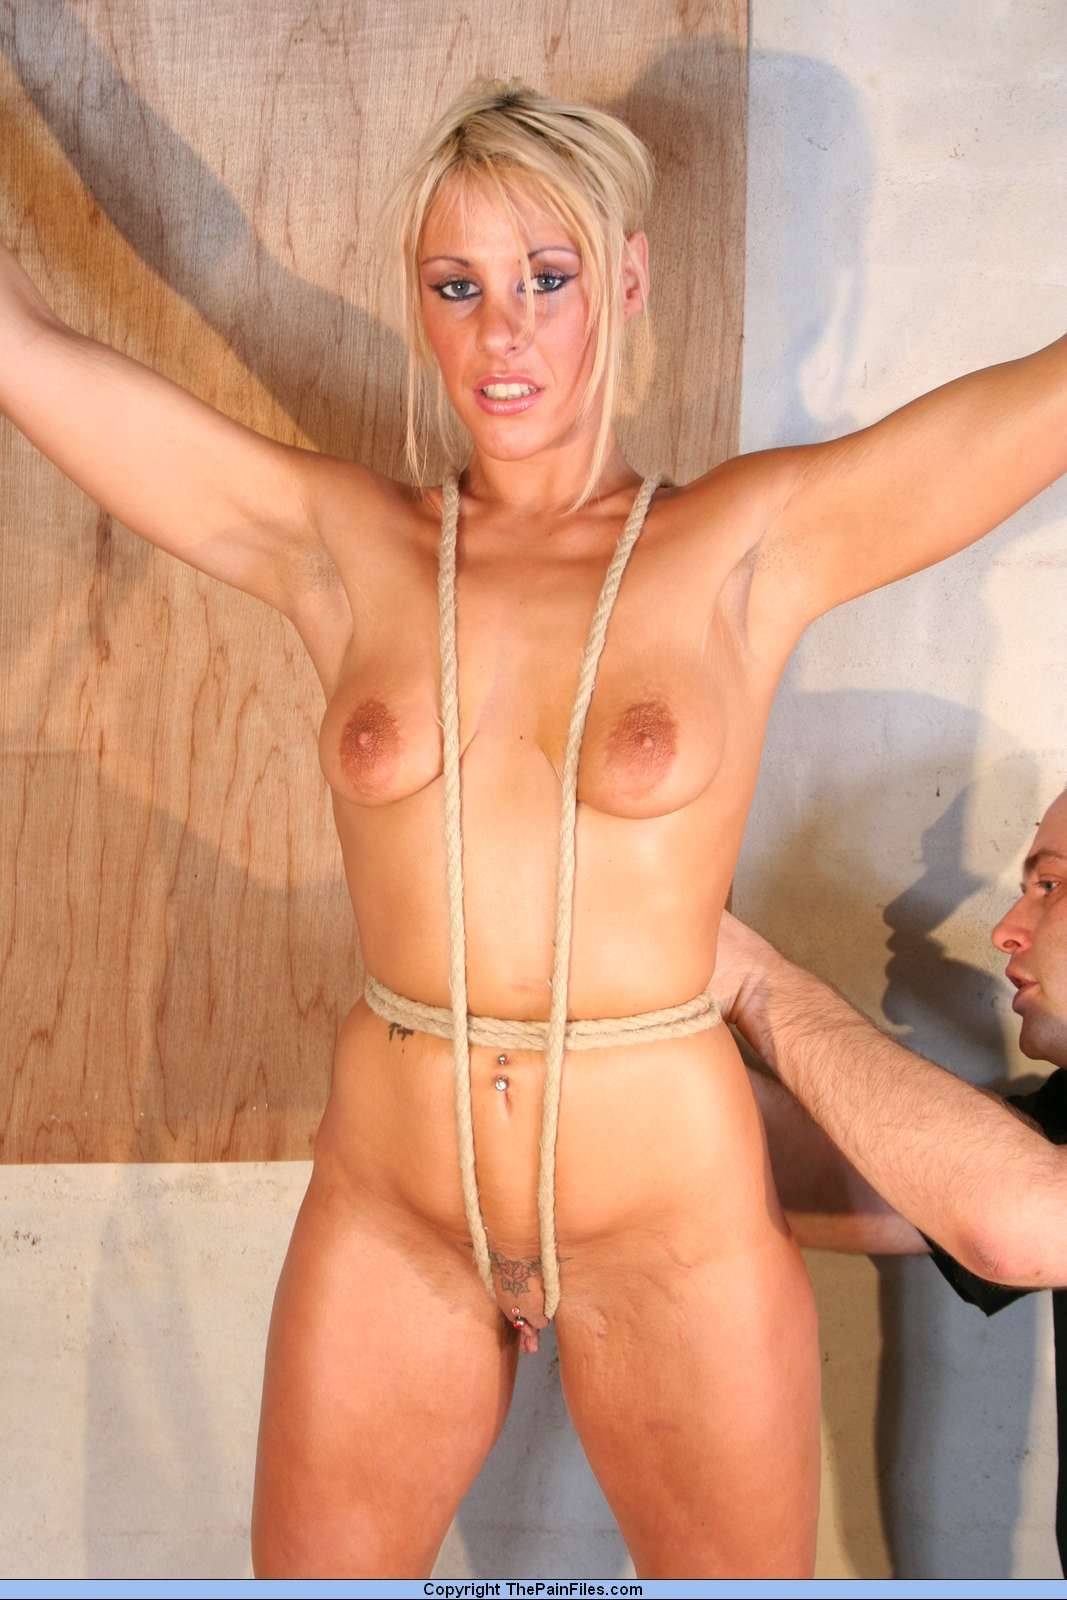 galleries Crystel porn lei